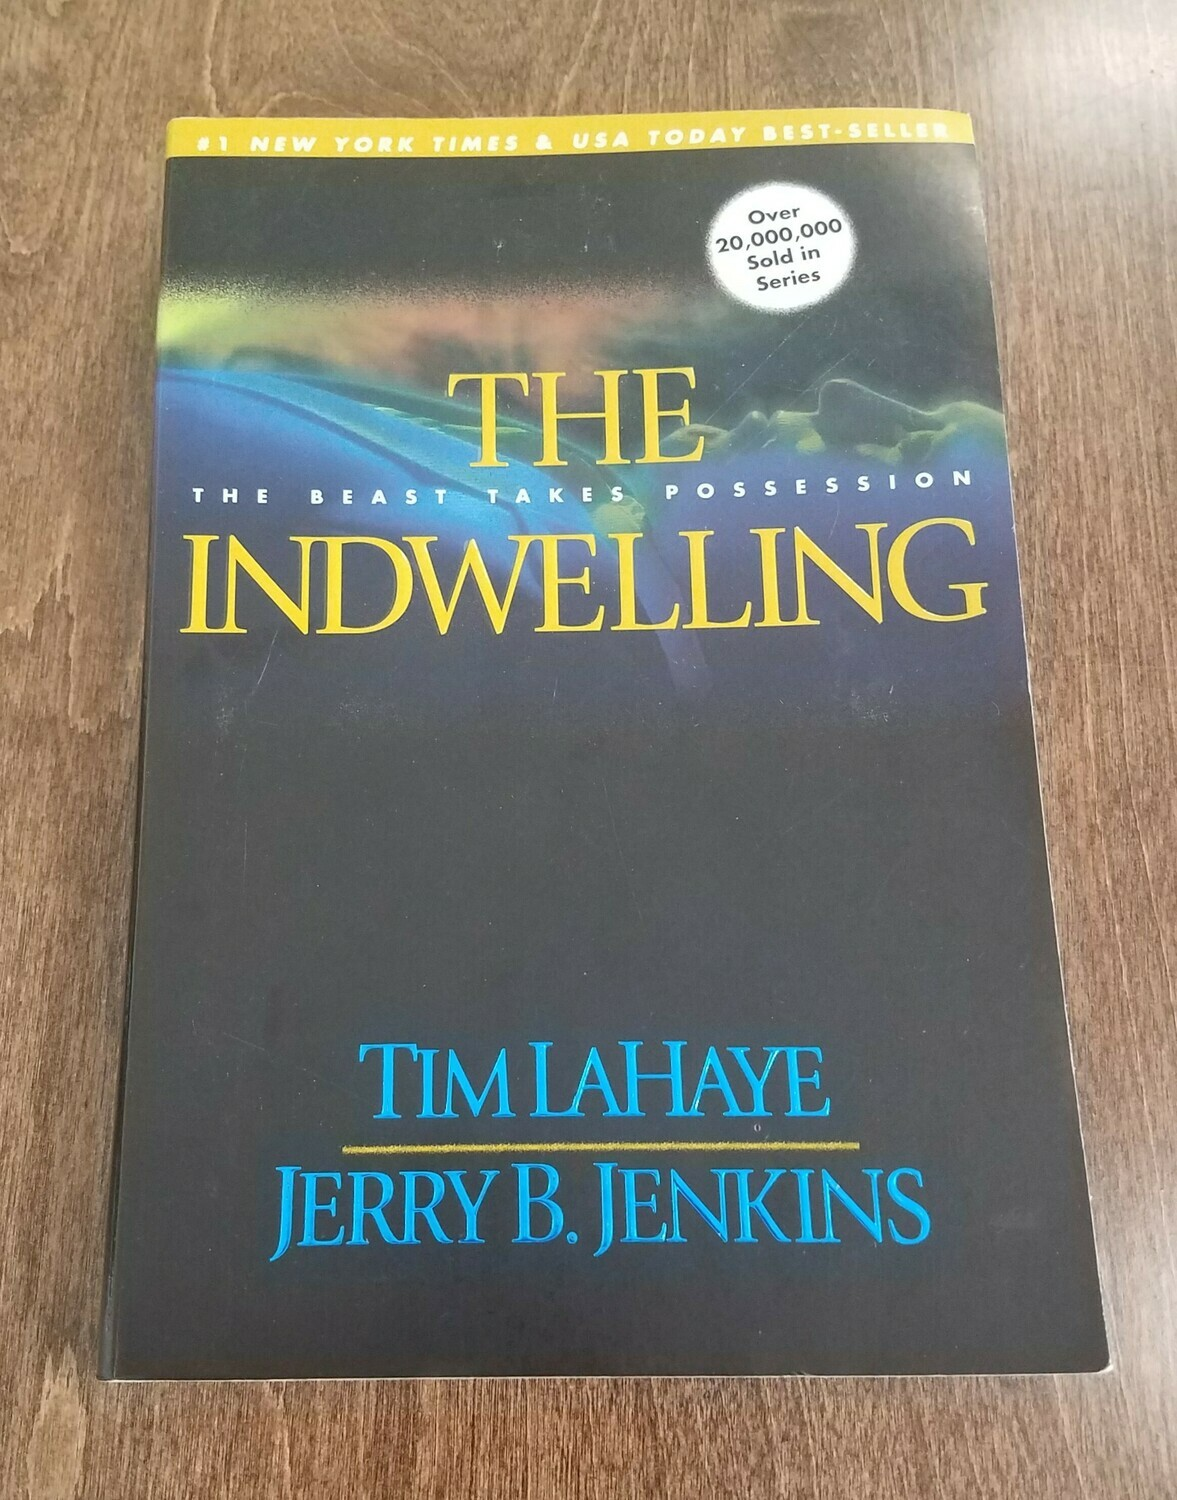 The Indwelling: The Beast Takes Possession by Tim LaHaye and Jerry B. Jenkins - Paperback